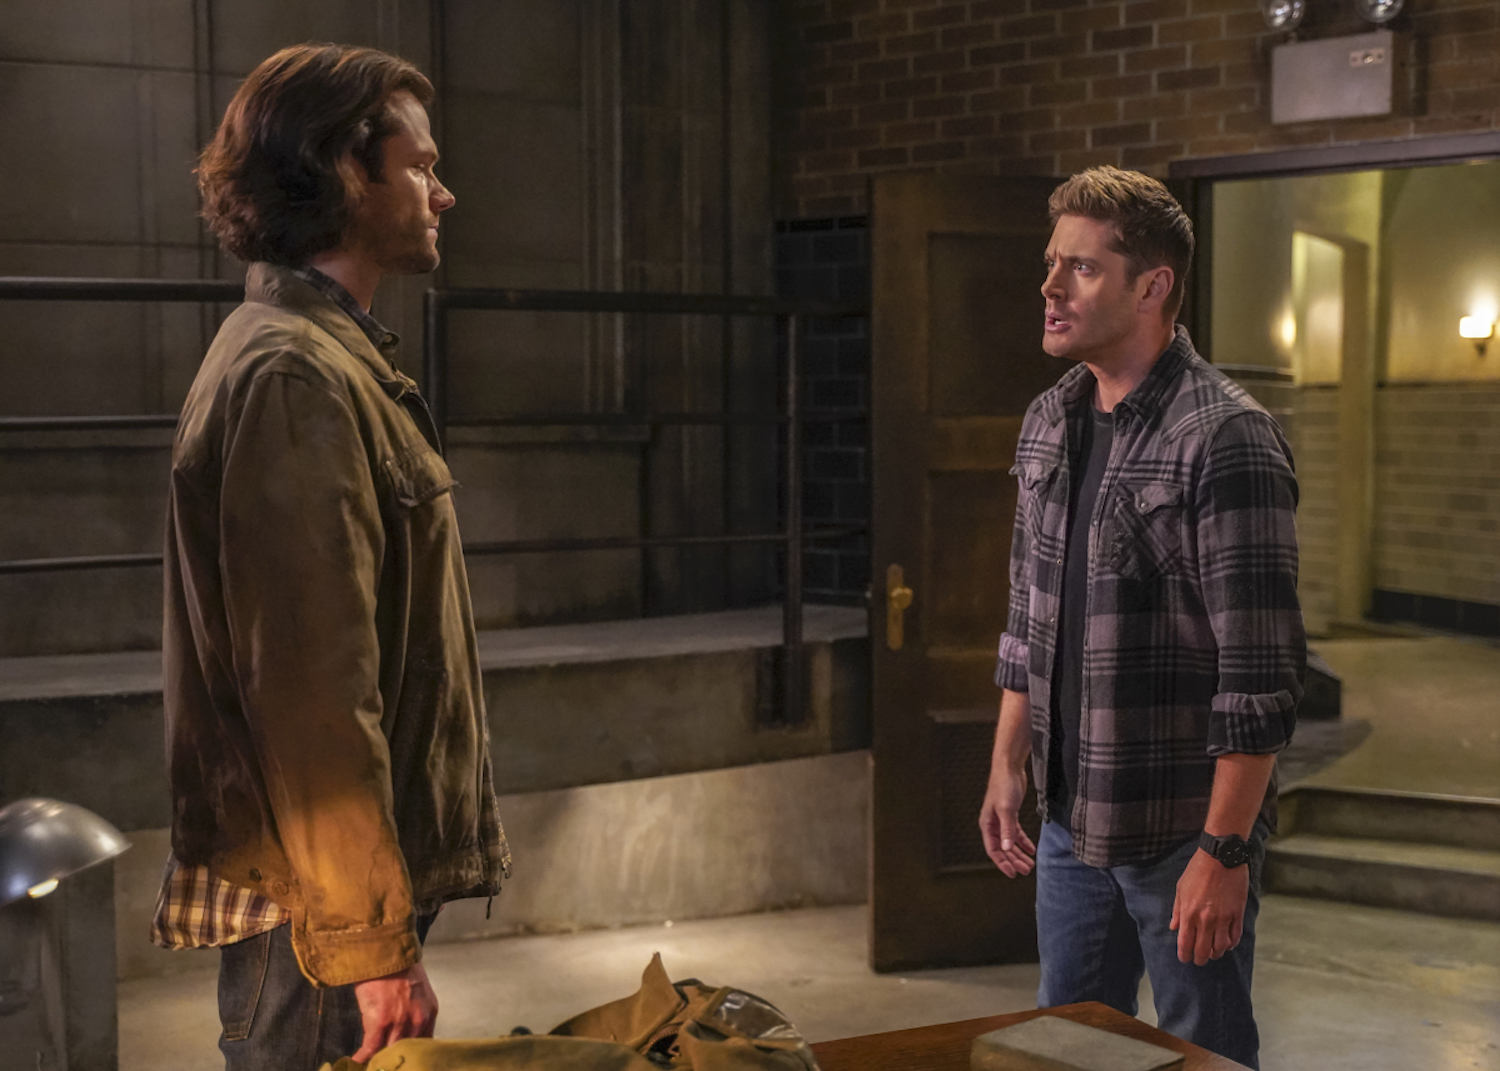 Jared Padalecki Jensen Ackles Supernatural Season 15 Episode 9 Sam Dean Winchester